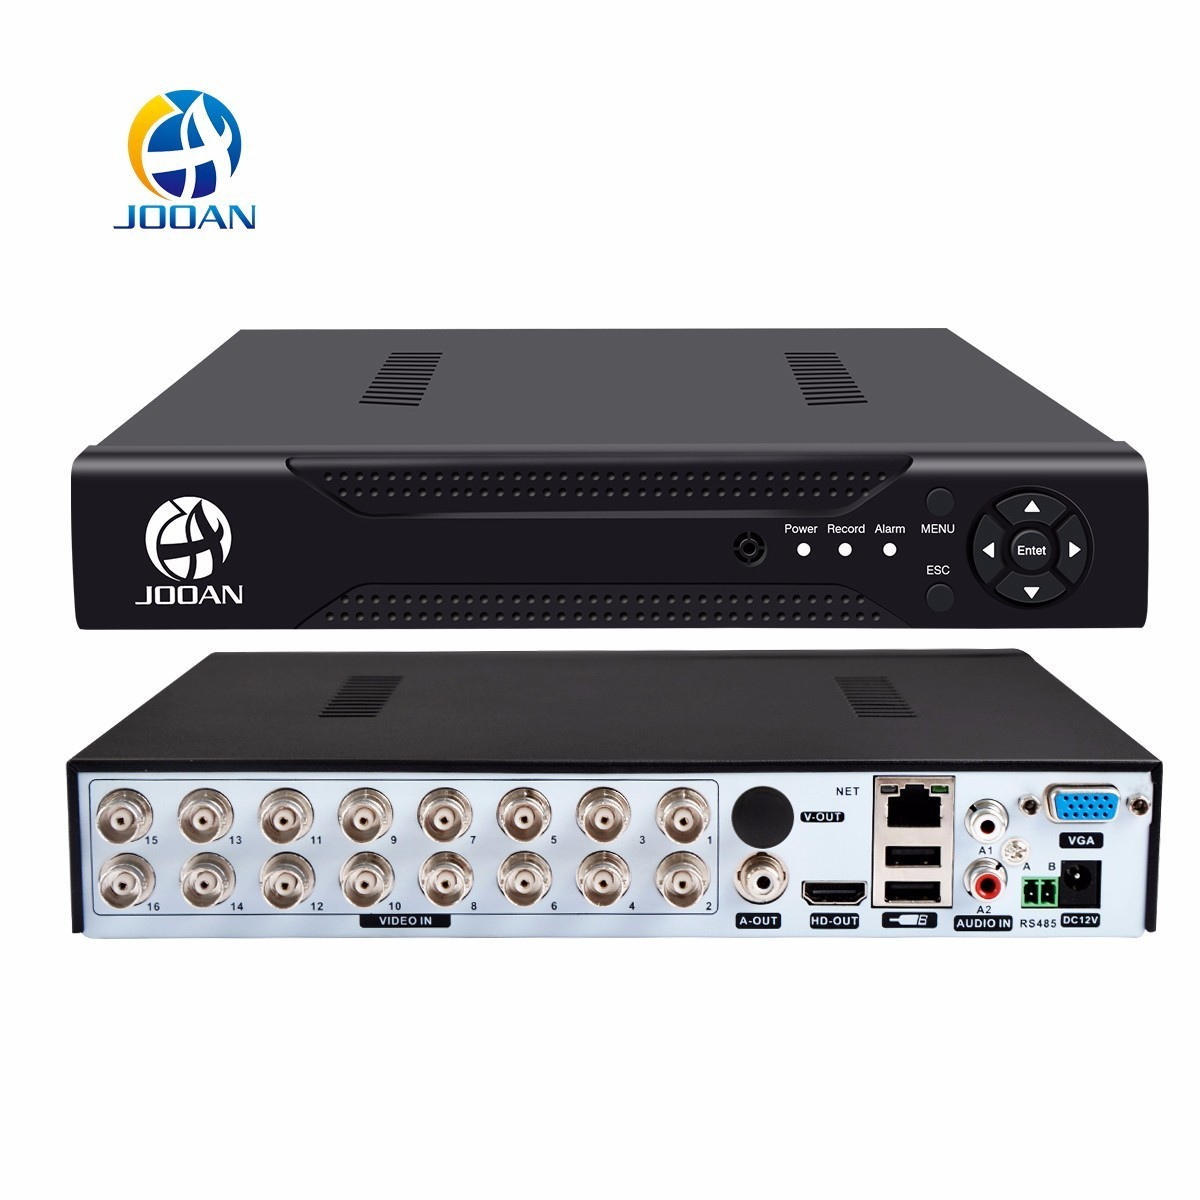 JOOAN 4216T 16CH CCTV DVR H.264 HD-OUT P2P Cloud video recorder home Surveillance security CCTV digital video recorder сумка для инструмента jettools м 17